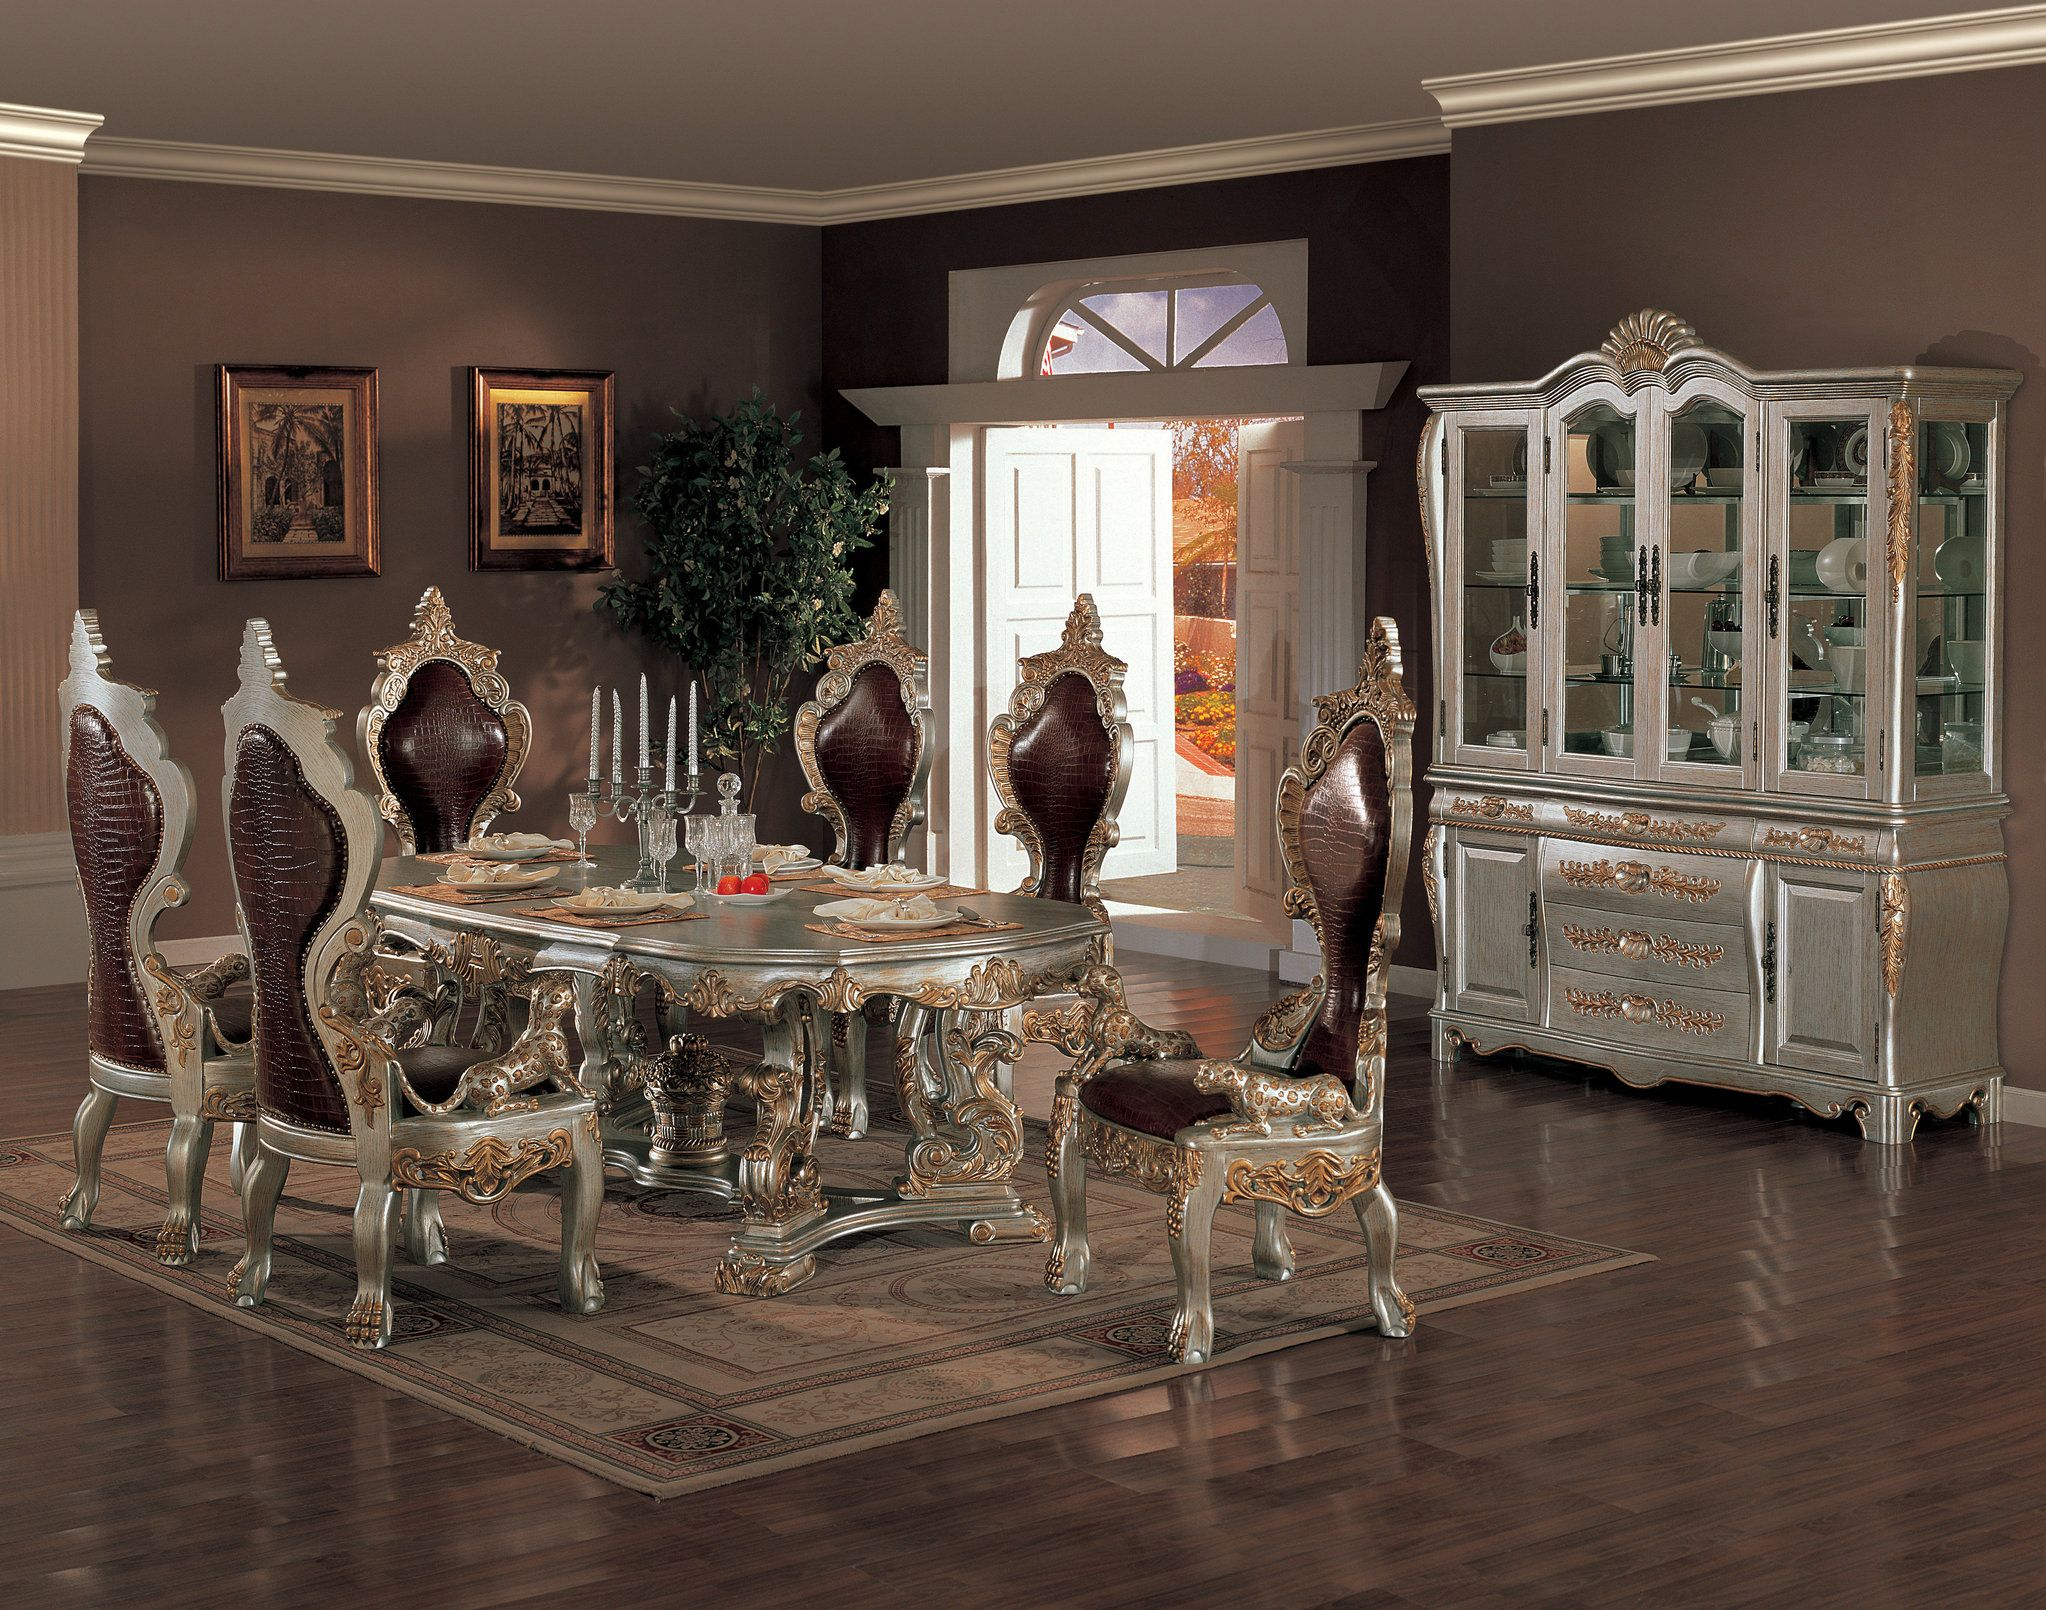 Antique Dining Room Tables And Chairs Dining Room With Buffet Table  Elegant And Ornate Wood Dining Set